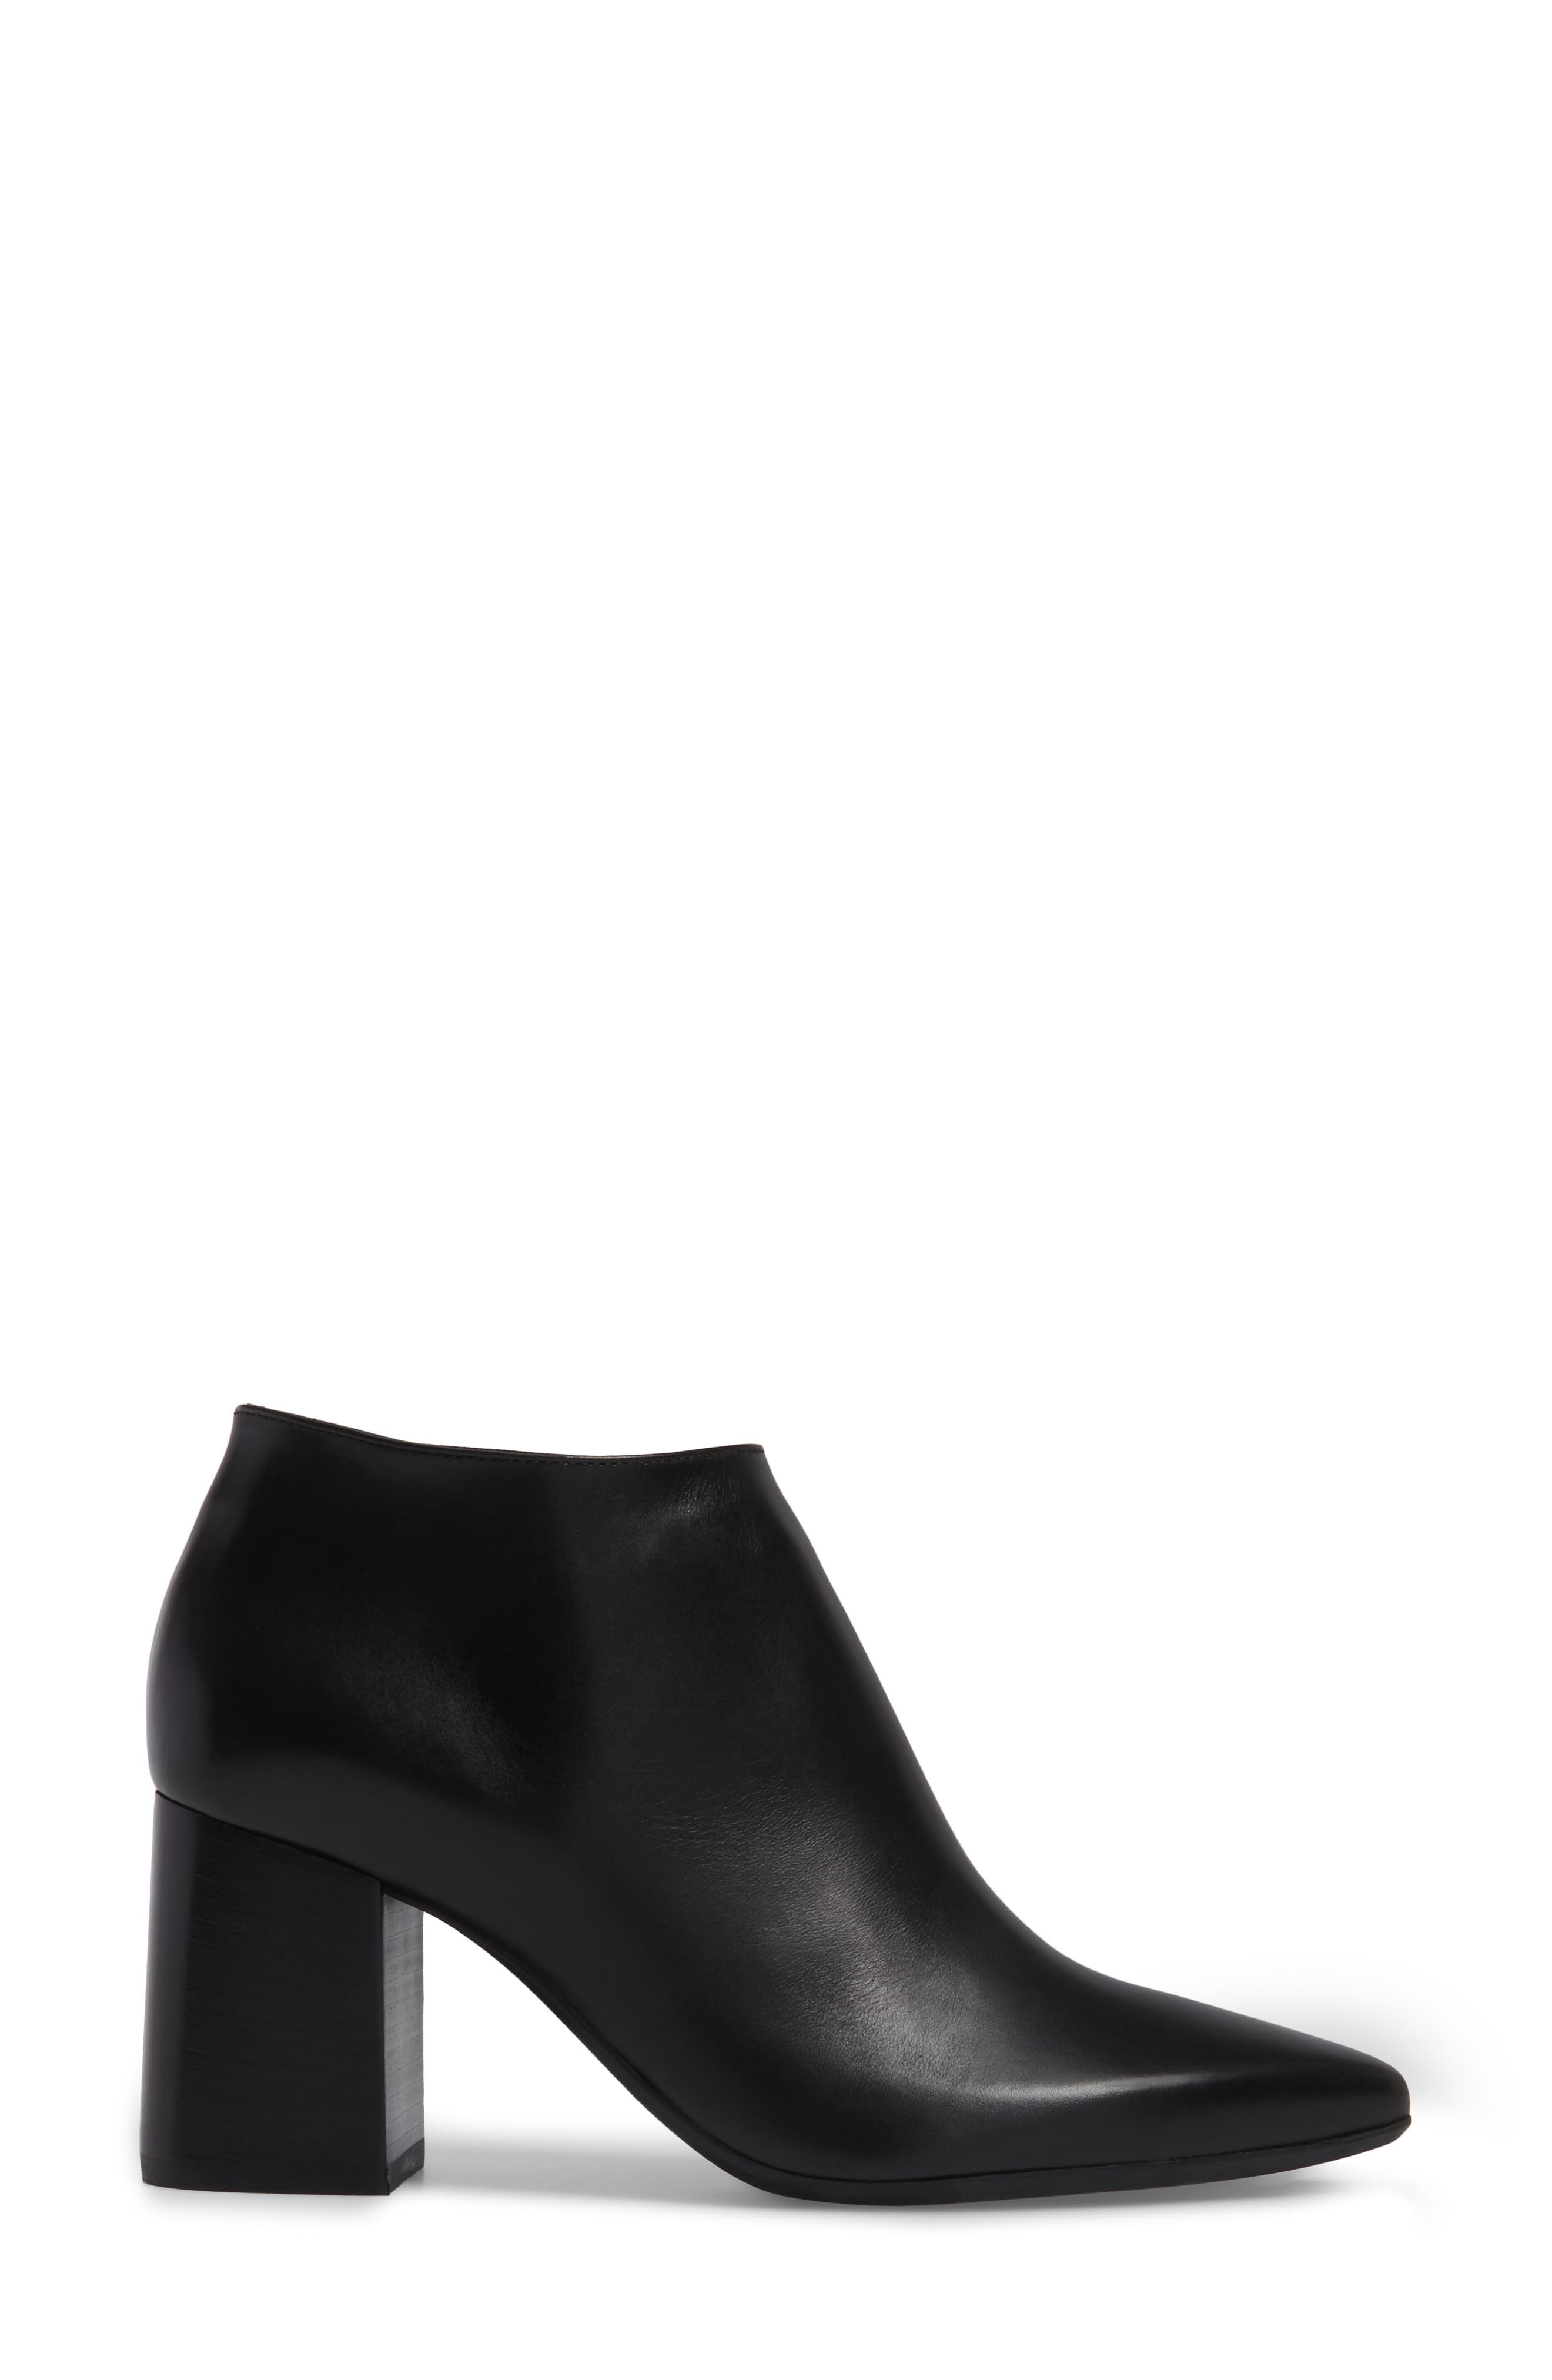 Maria Pointy Toe Bootie,                             Alternate thumbnail 3, color,                             Black Leather